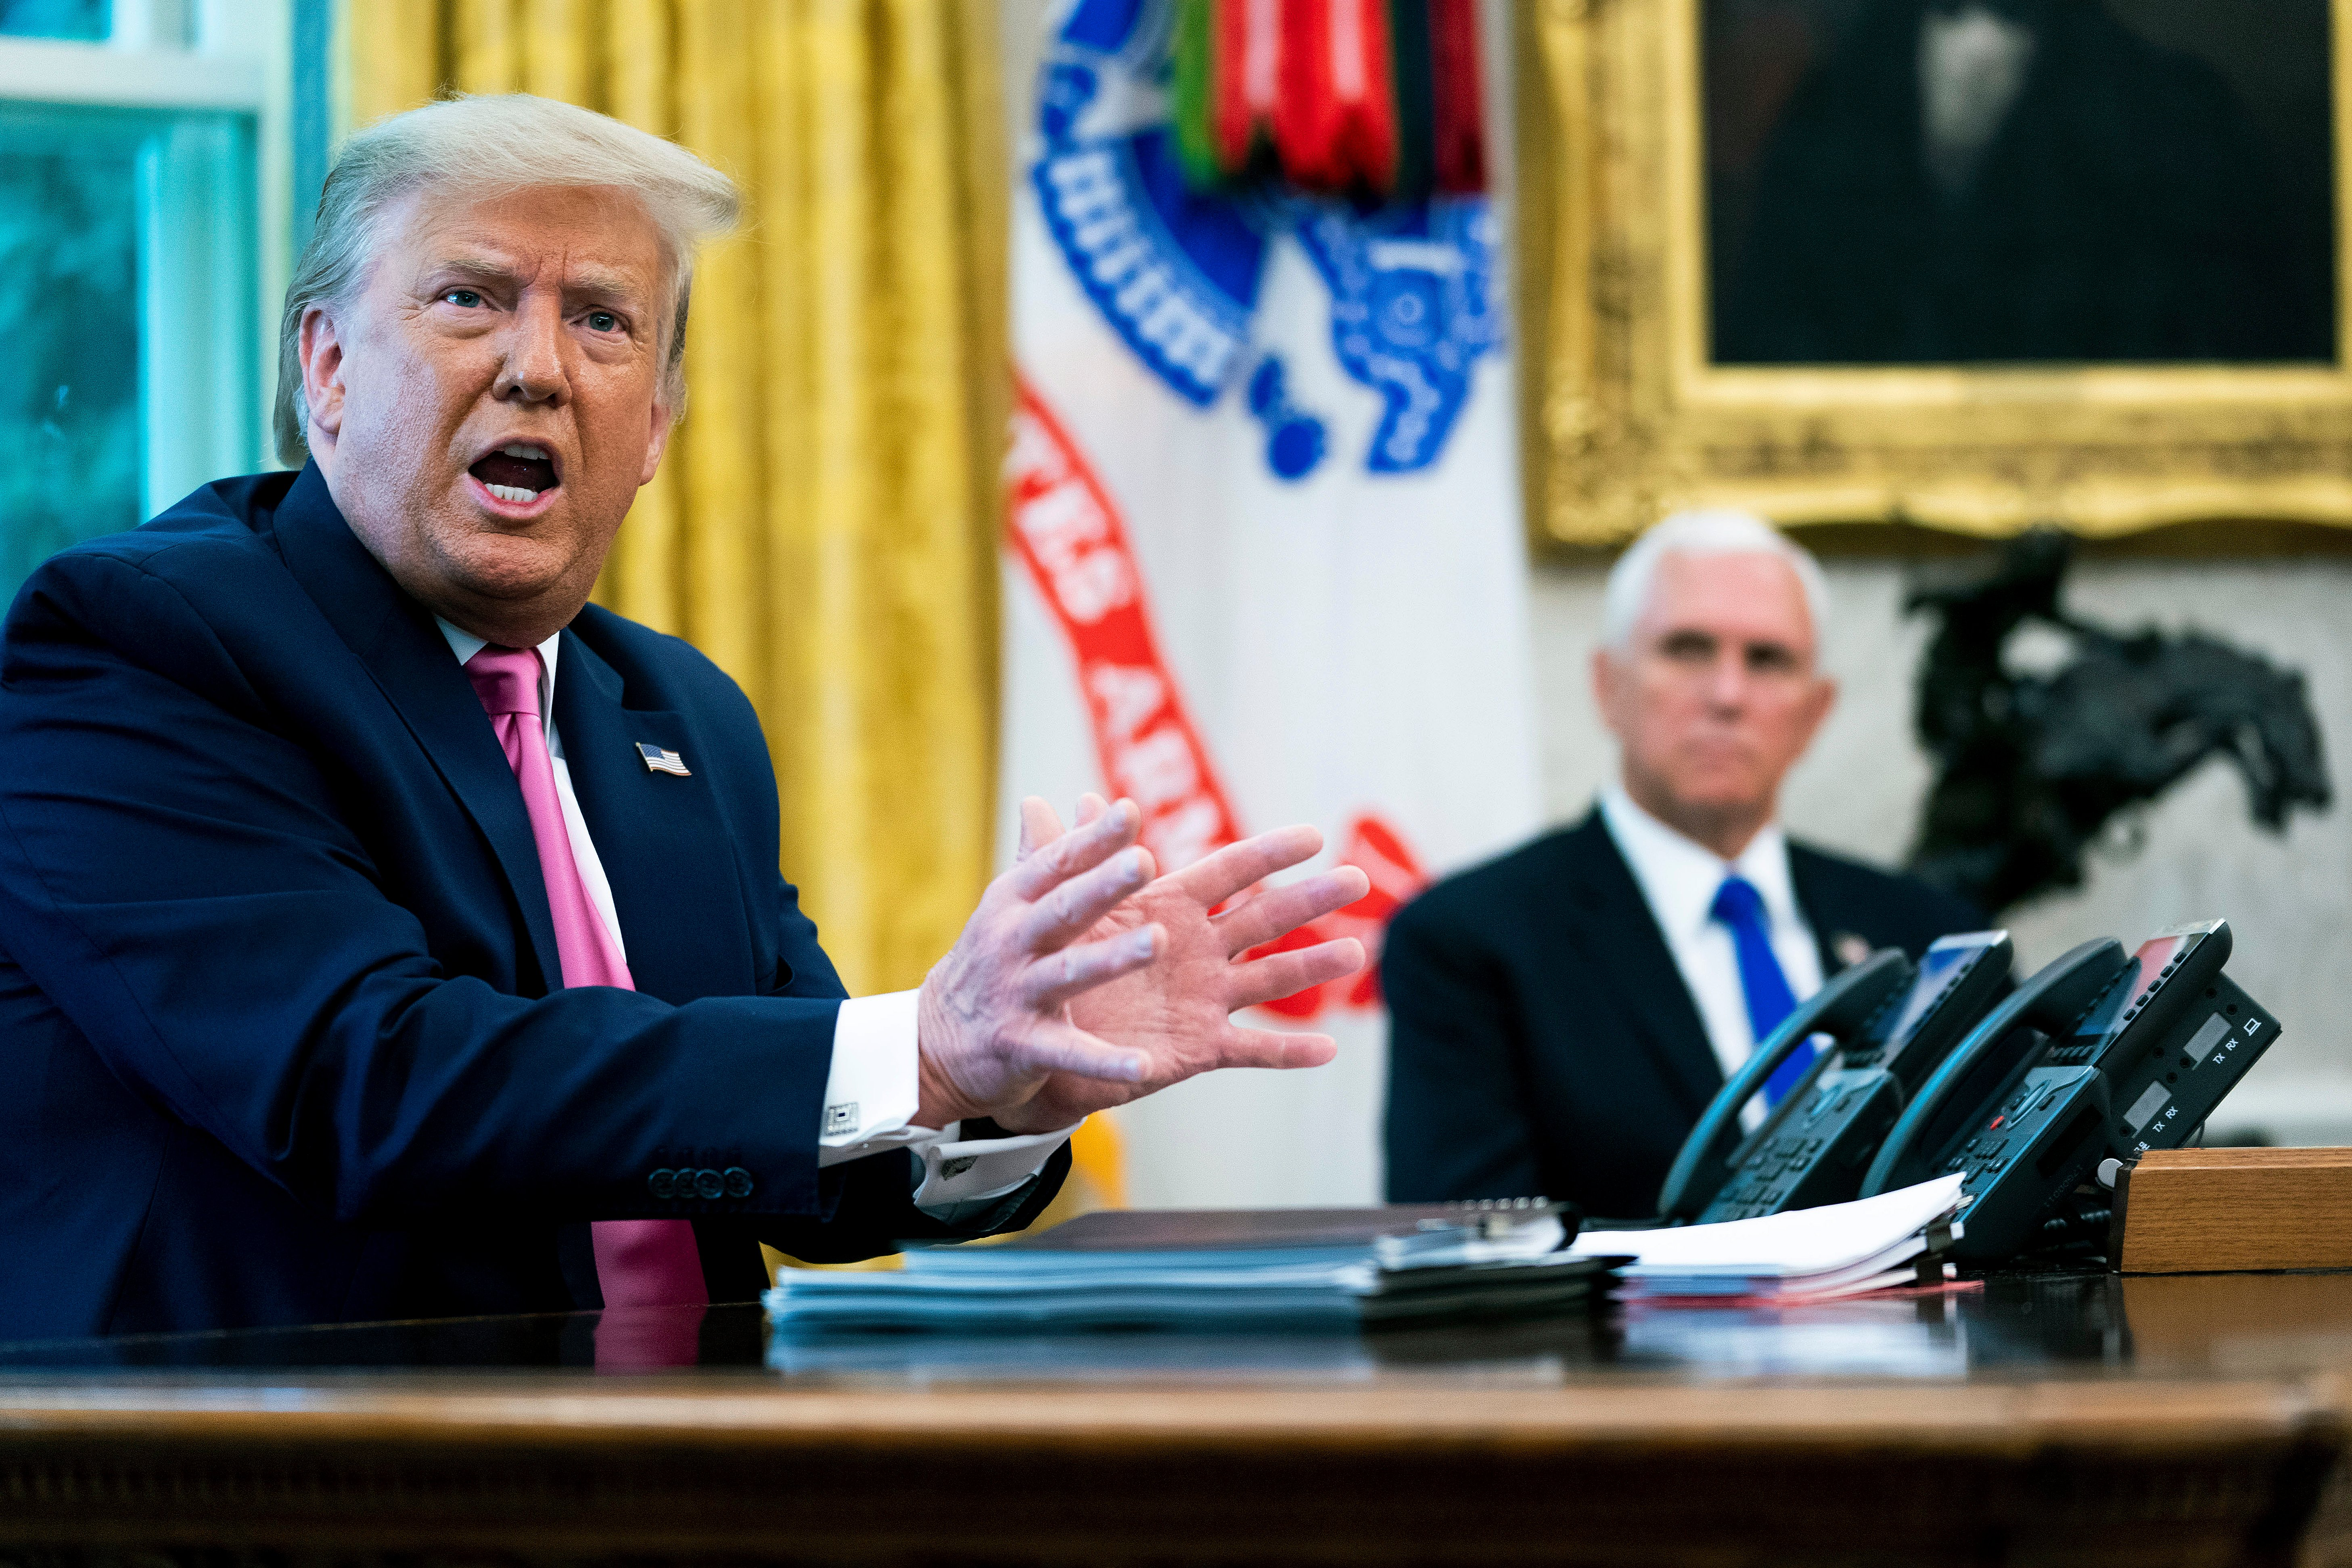 WASHINGTON, DC - JULY 20: U.S. President Donald Trump talks to reporters with Vice President Mike Pence in the Oval Office at the White House July 20, 2020 in Washington, DC. Trump hosted Republican Congressional leaders and members of his cabinet to talk about a proposed new round of financial stimulus to help the economy during the ongoing global coronavirus pandemic. (Photo by Doug Mills-Pool/Getty Images)